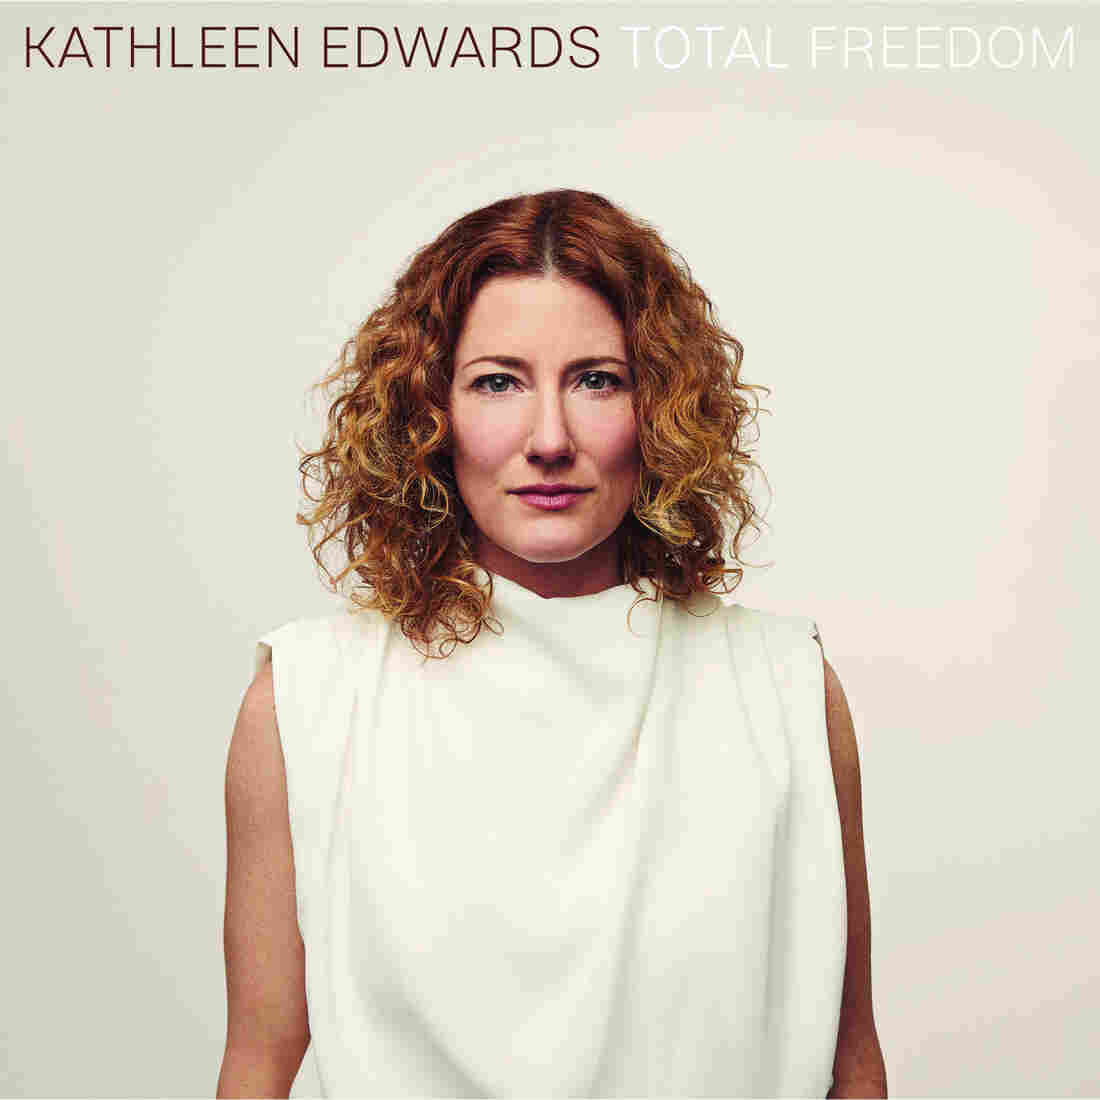 Kathleen Edwards, Total Freedom